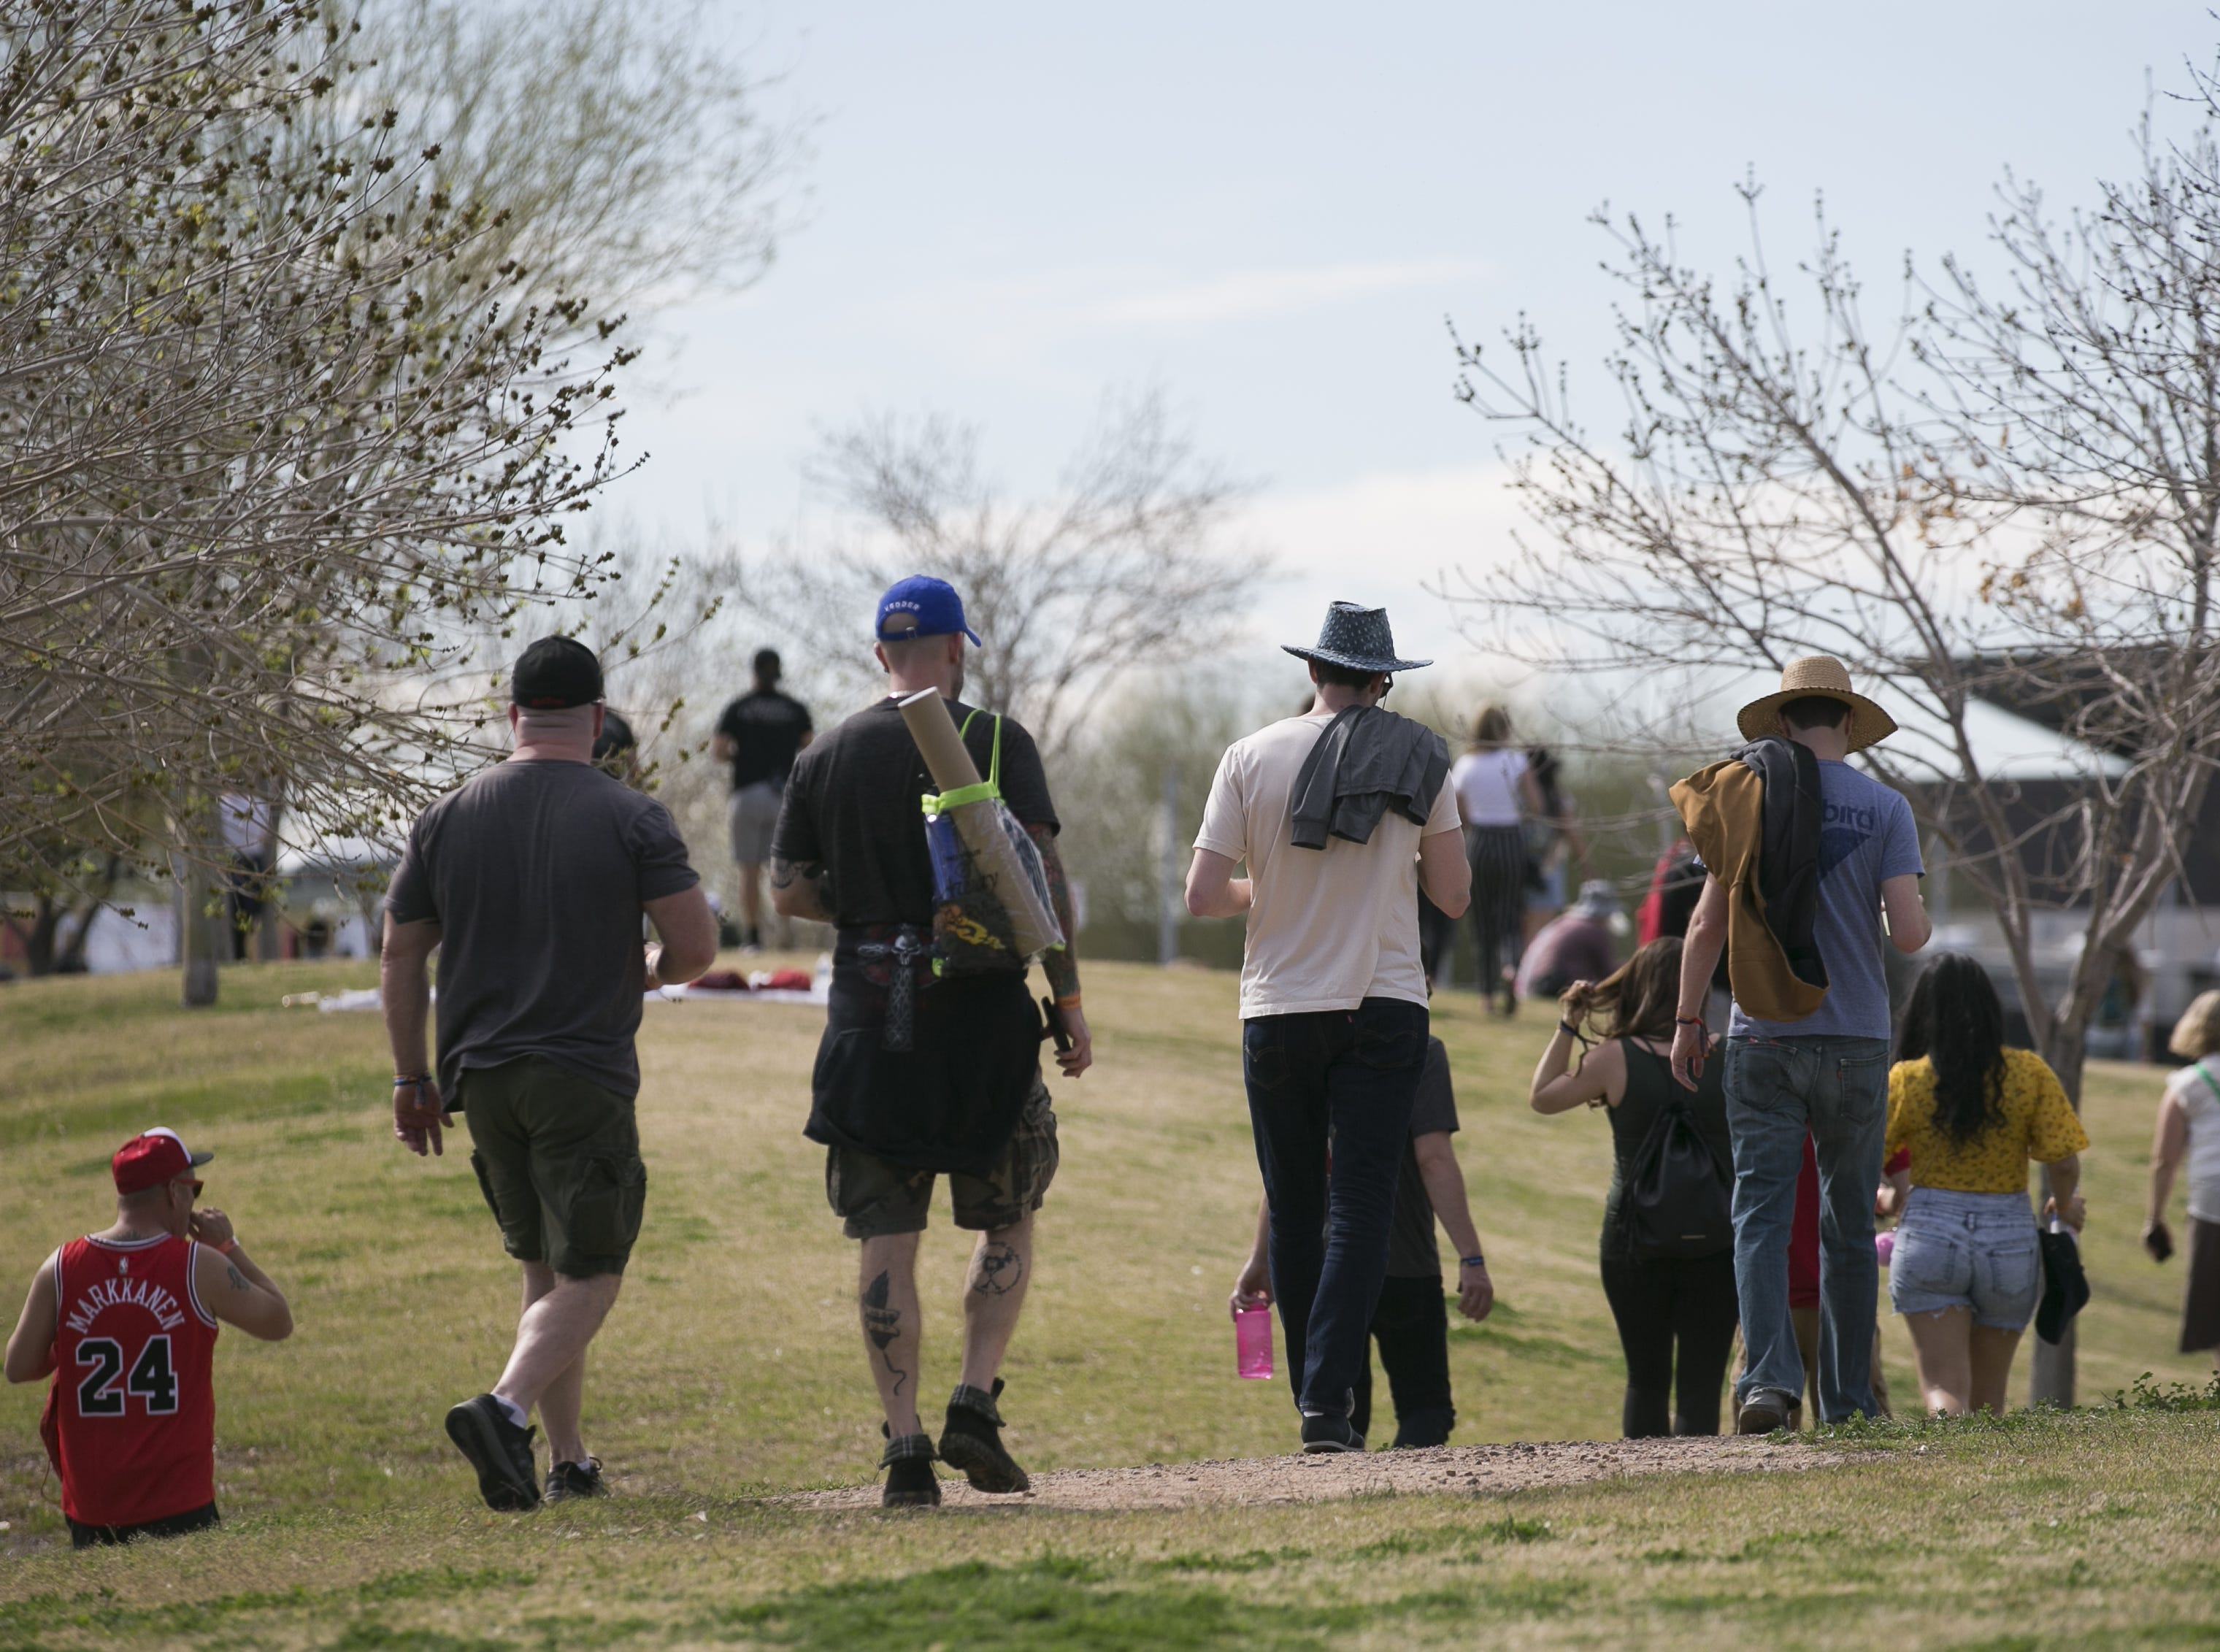 Festival goers walk through the Innings Festival at Tempe Beach Park on Saturday, March 2, 2019.